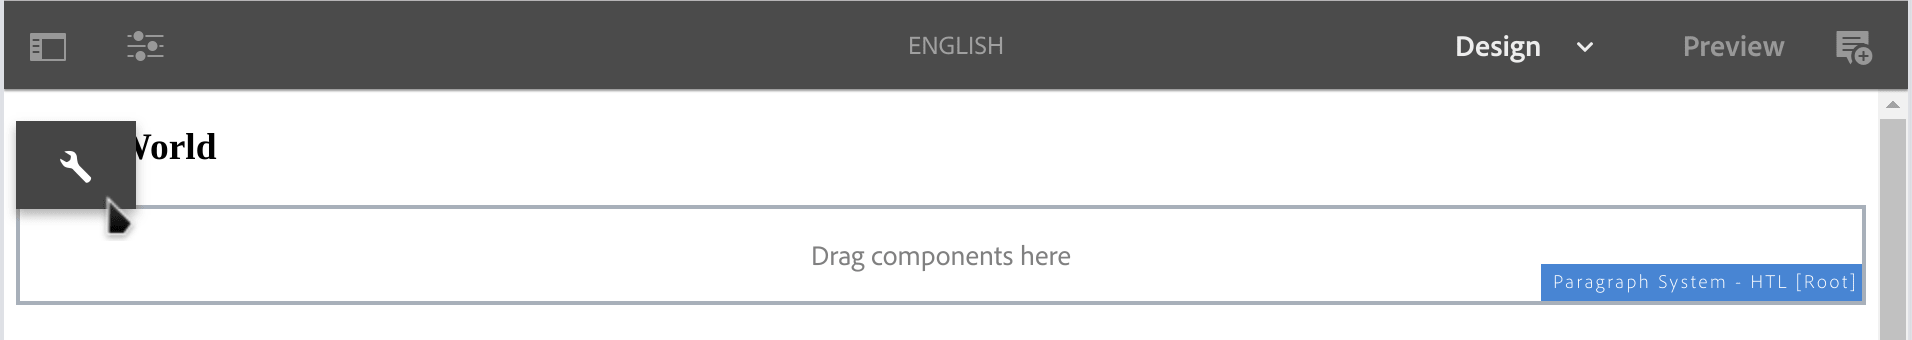 AEM Sites | Blank Slate > English > Design > select ParSys config icon